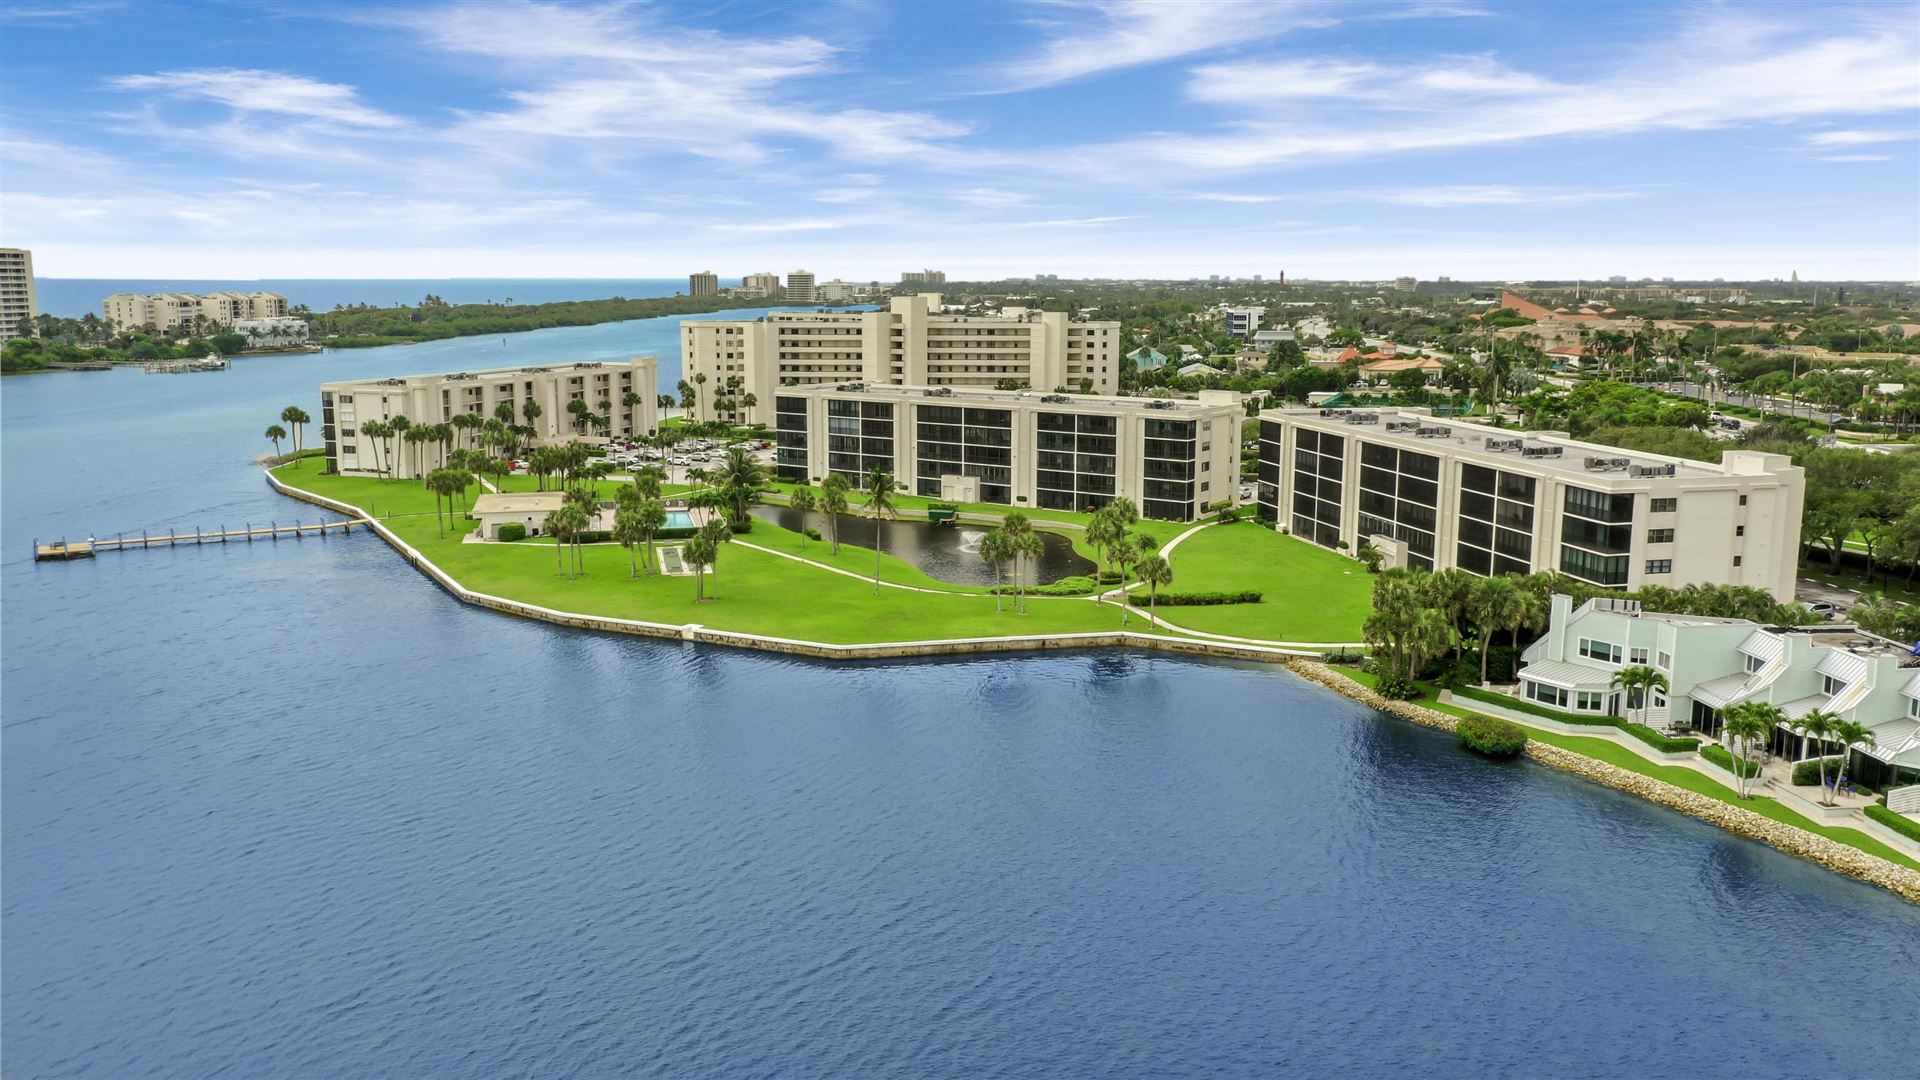 Photo of 300 Intracoastal Place #408, Tequesta, FL 33469 (MLS # RX-10628763)